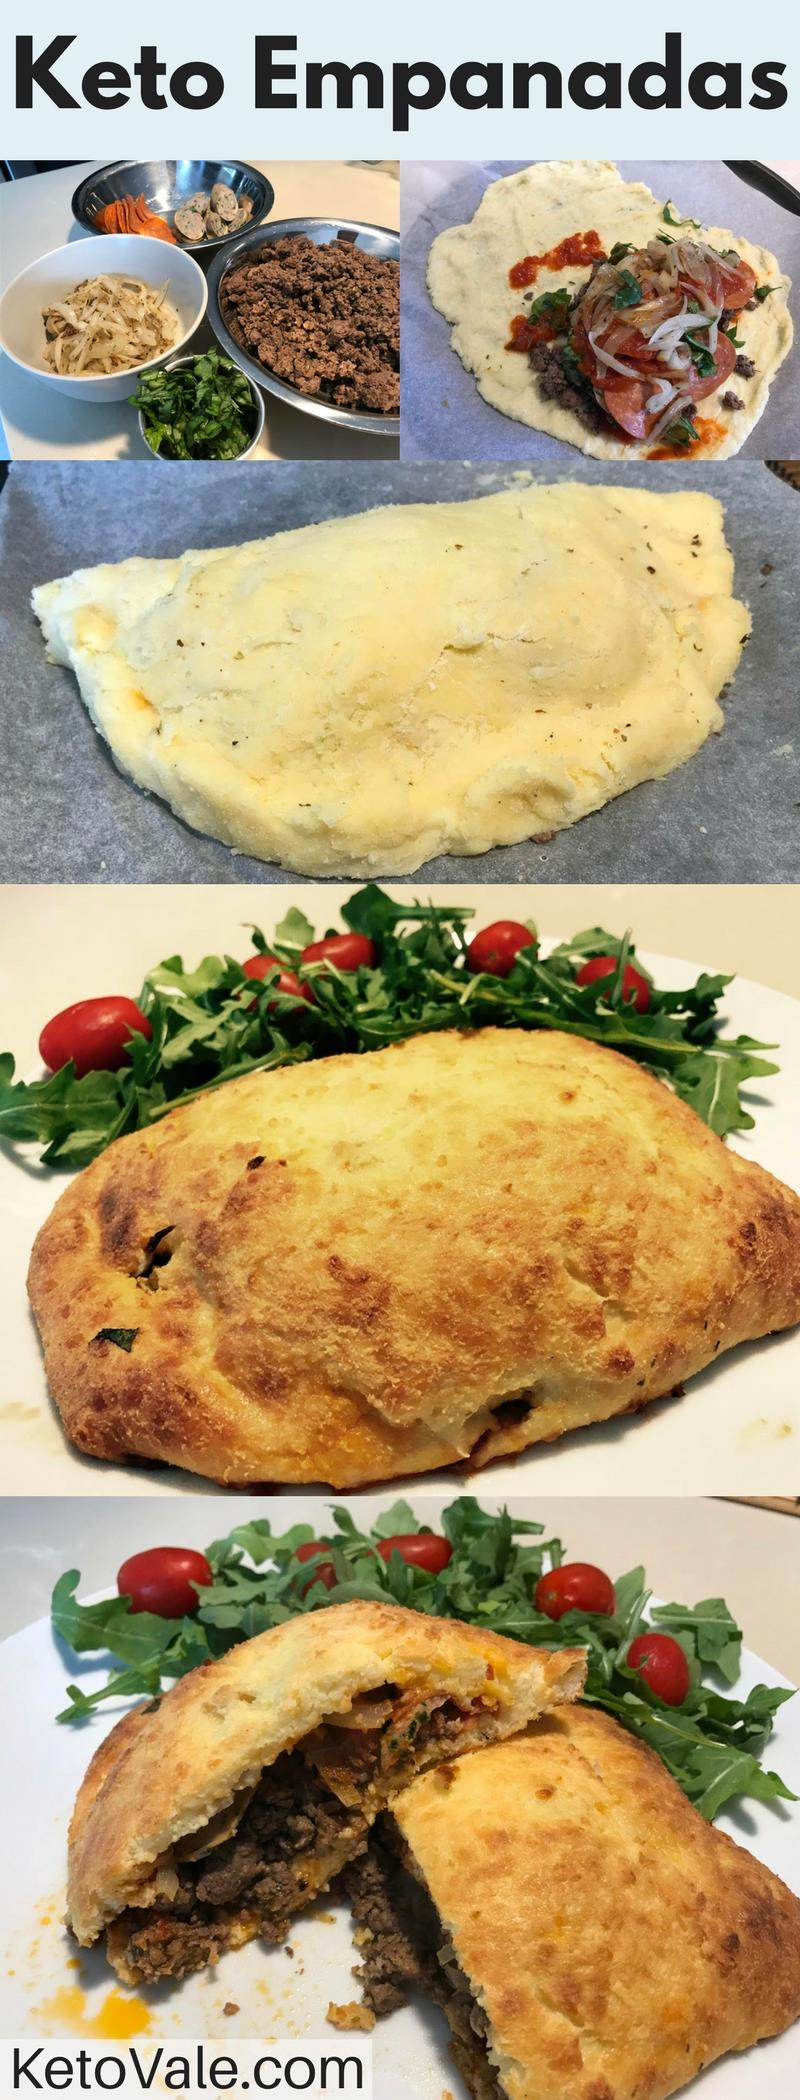 Keto Beef and Pepperoni Empanadas Low Carb Recipe